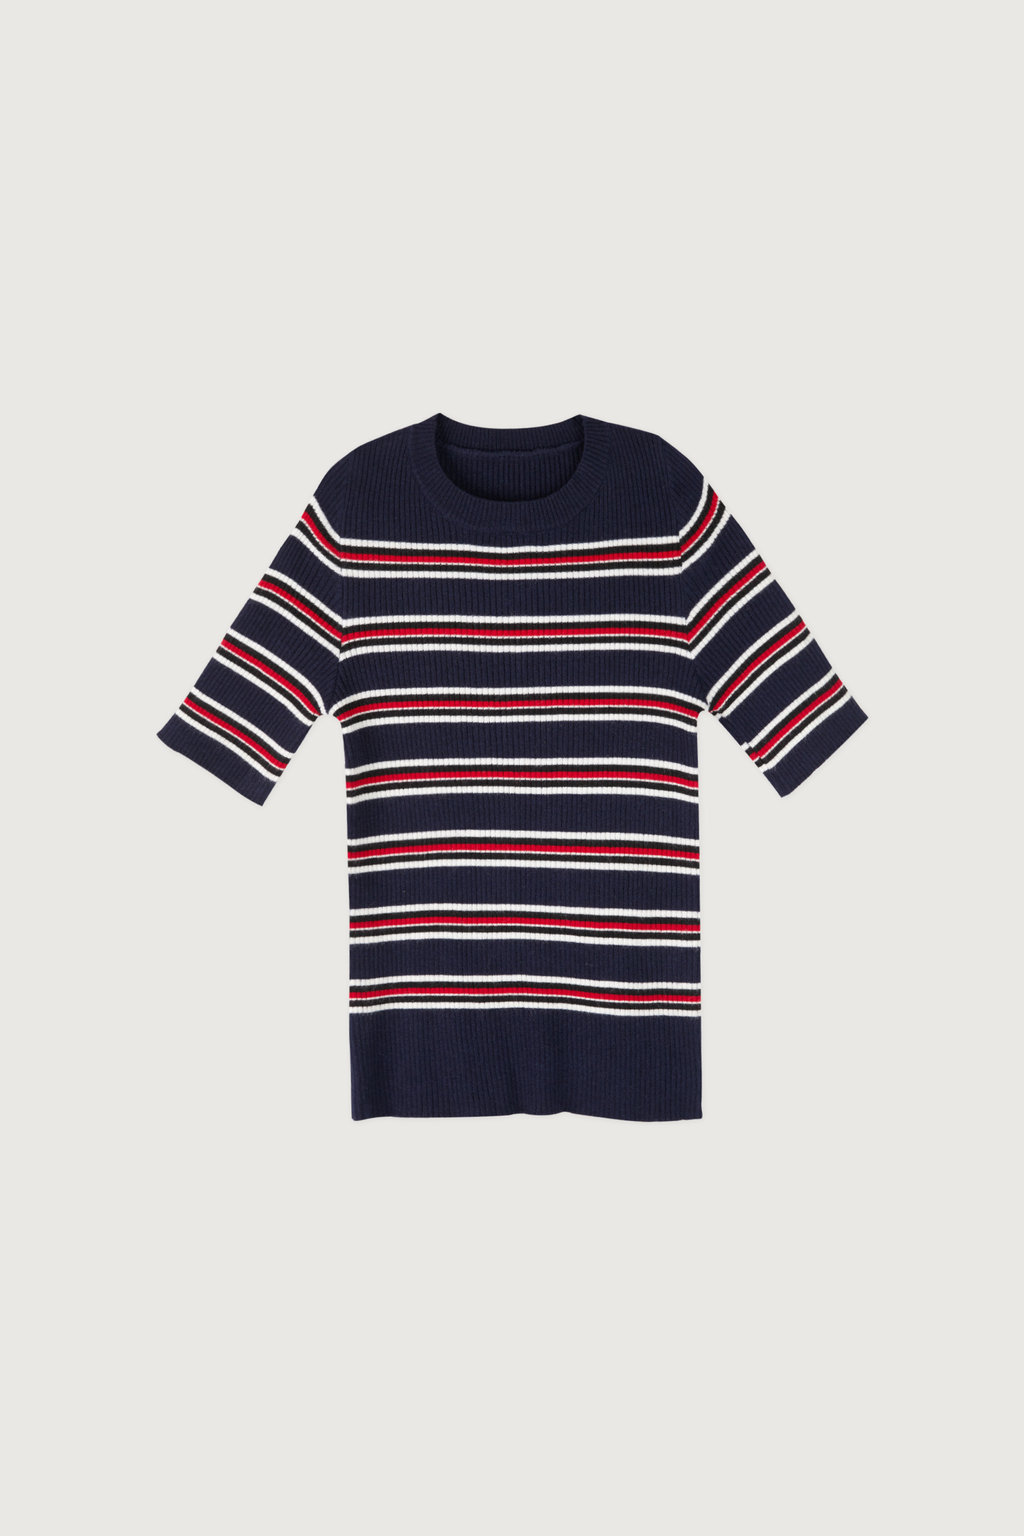 TShirt 3611 Red Blue Stripe 5